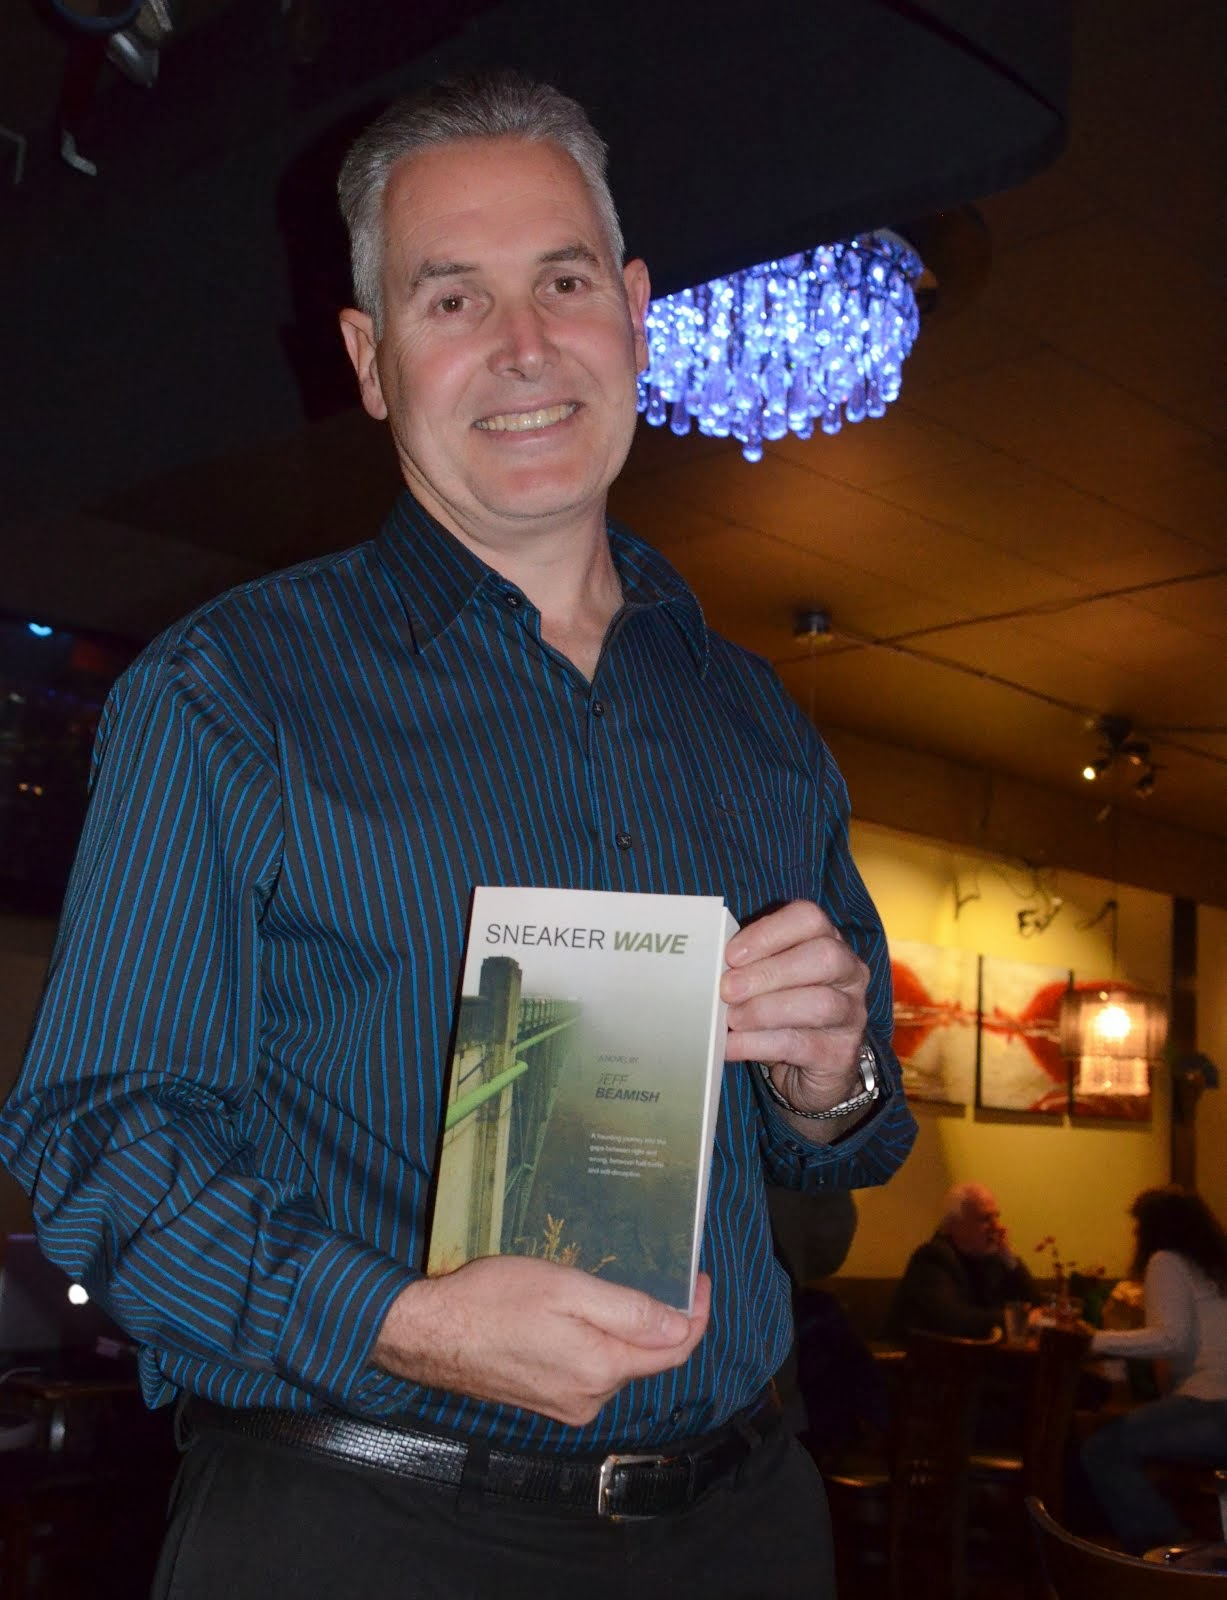 Jeff Beamish at his Vancouver book launch Nov. 5, 2013